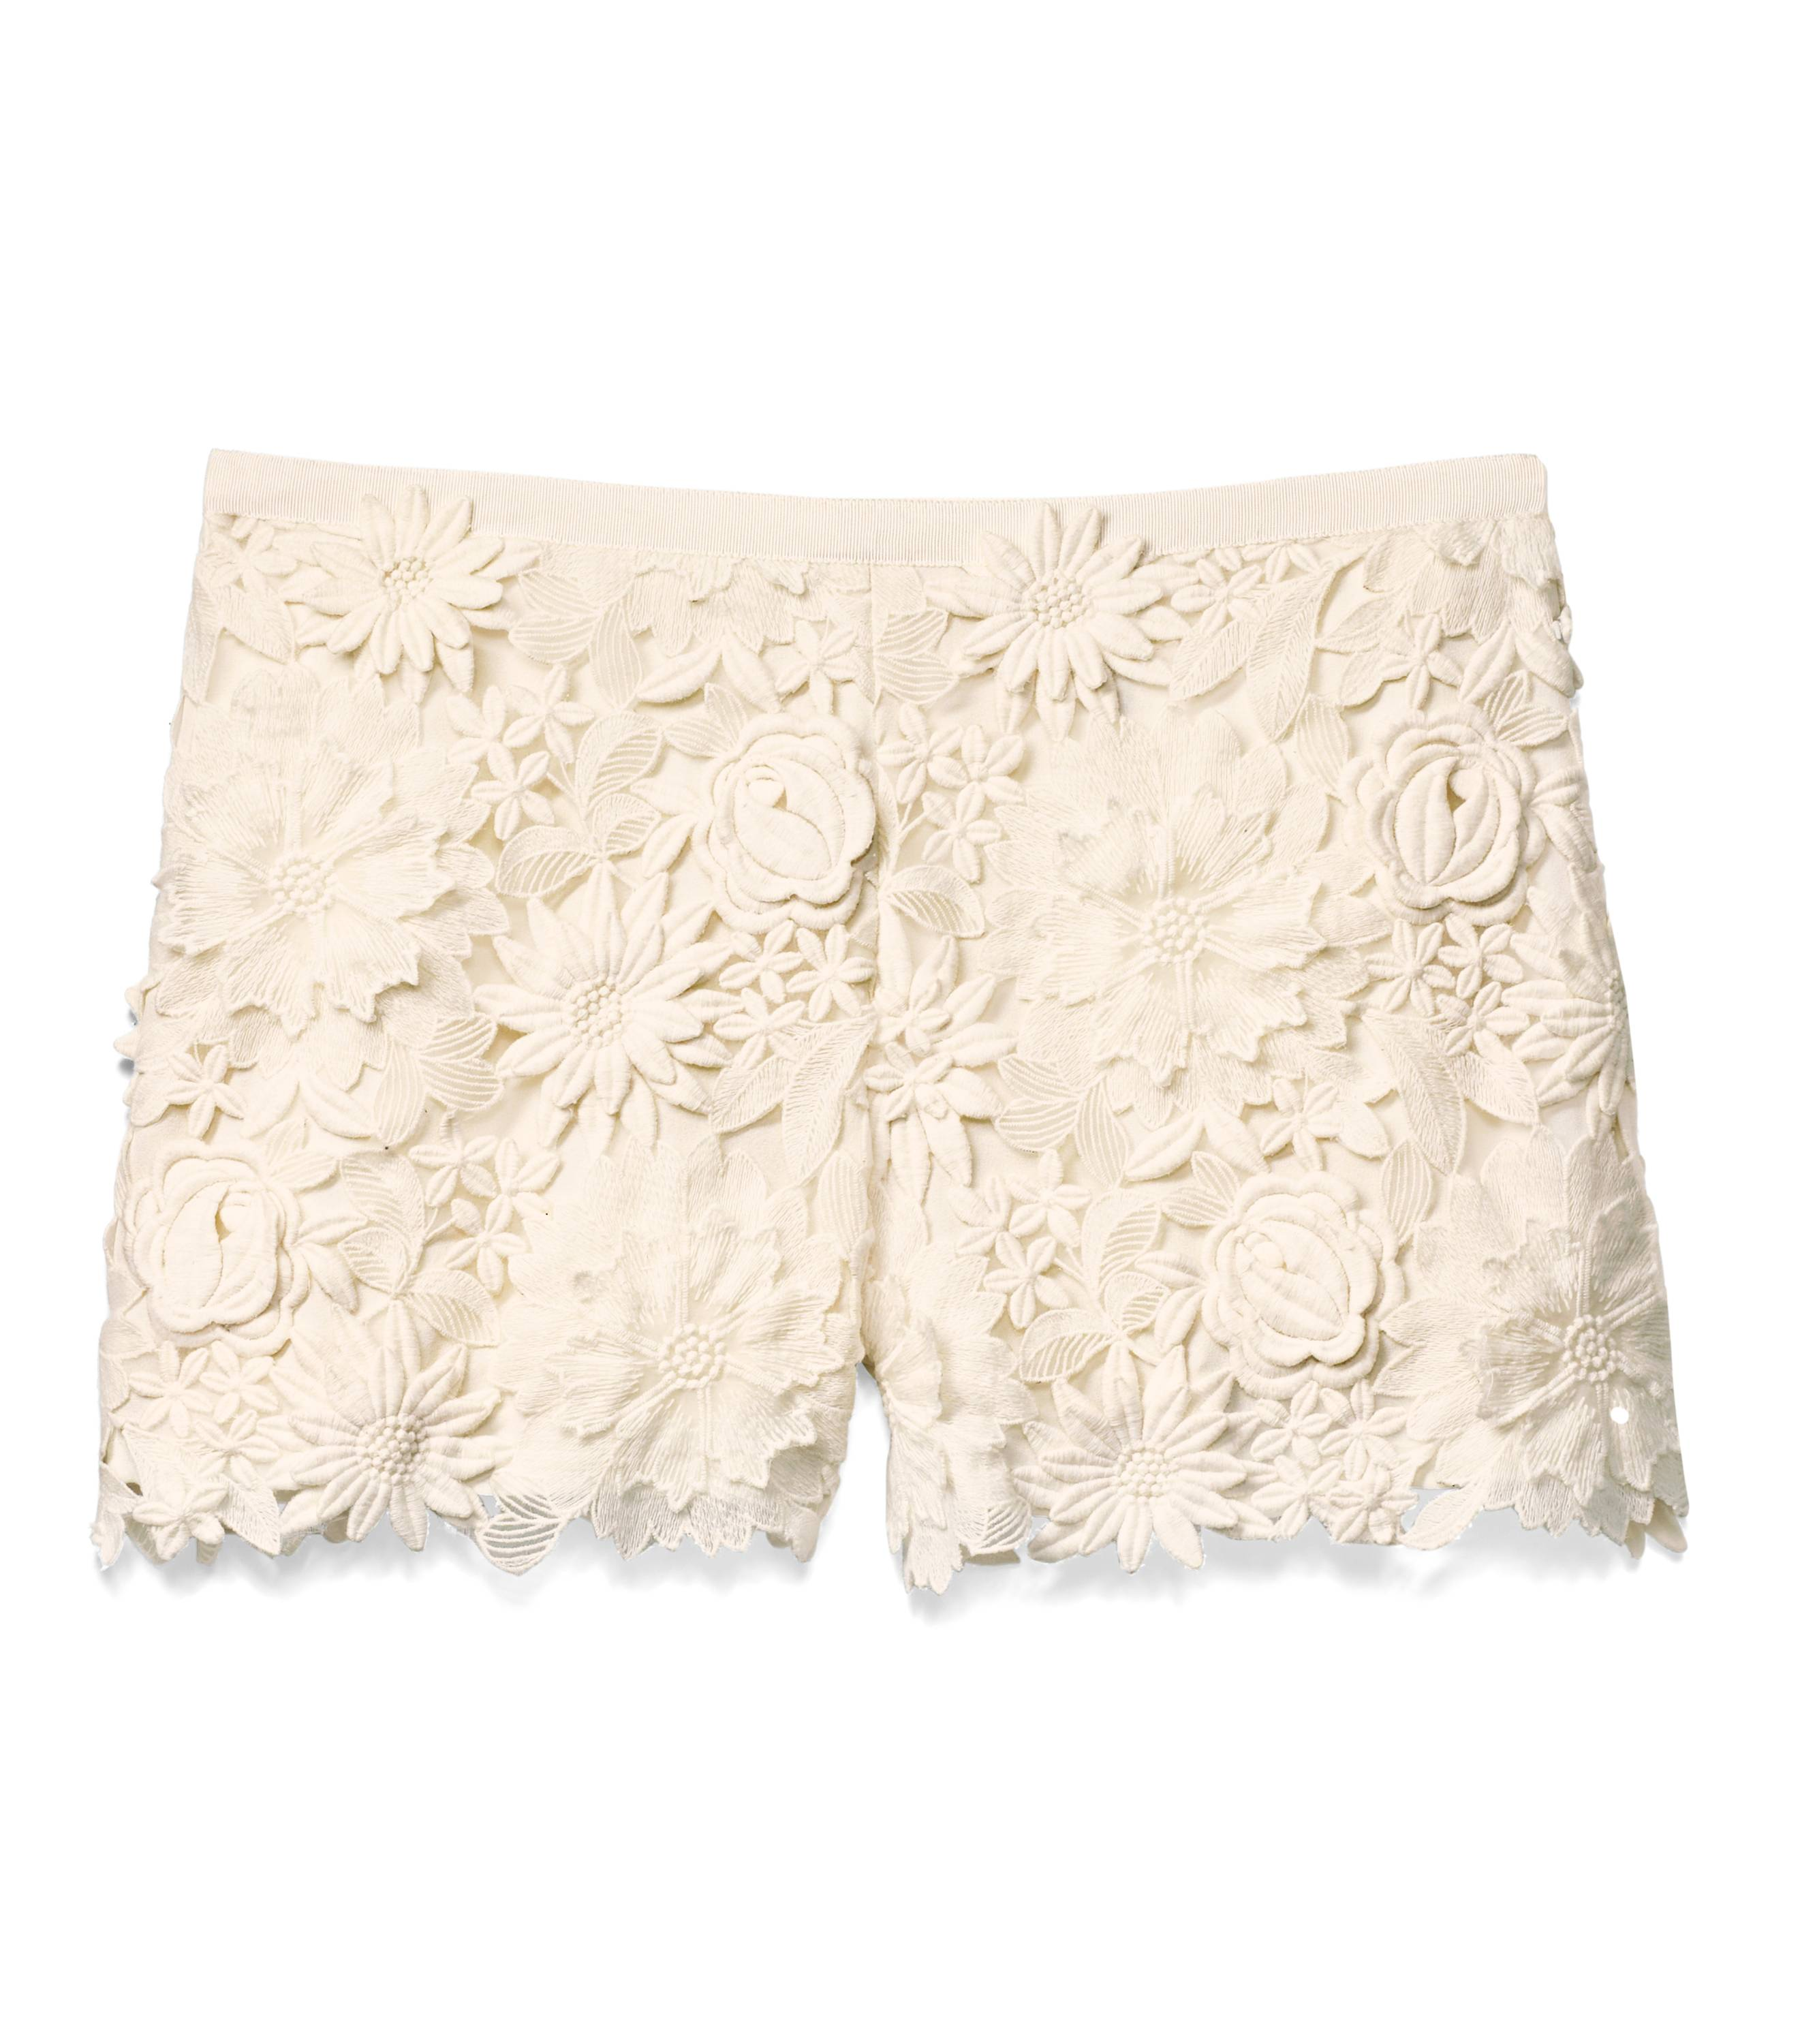 TB Noelle Short in Ivory